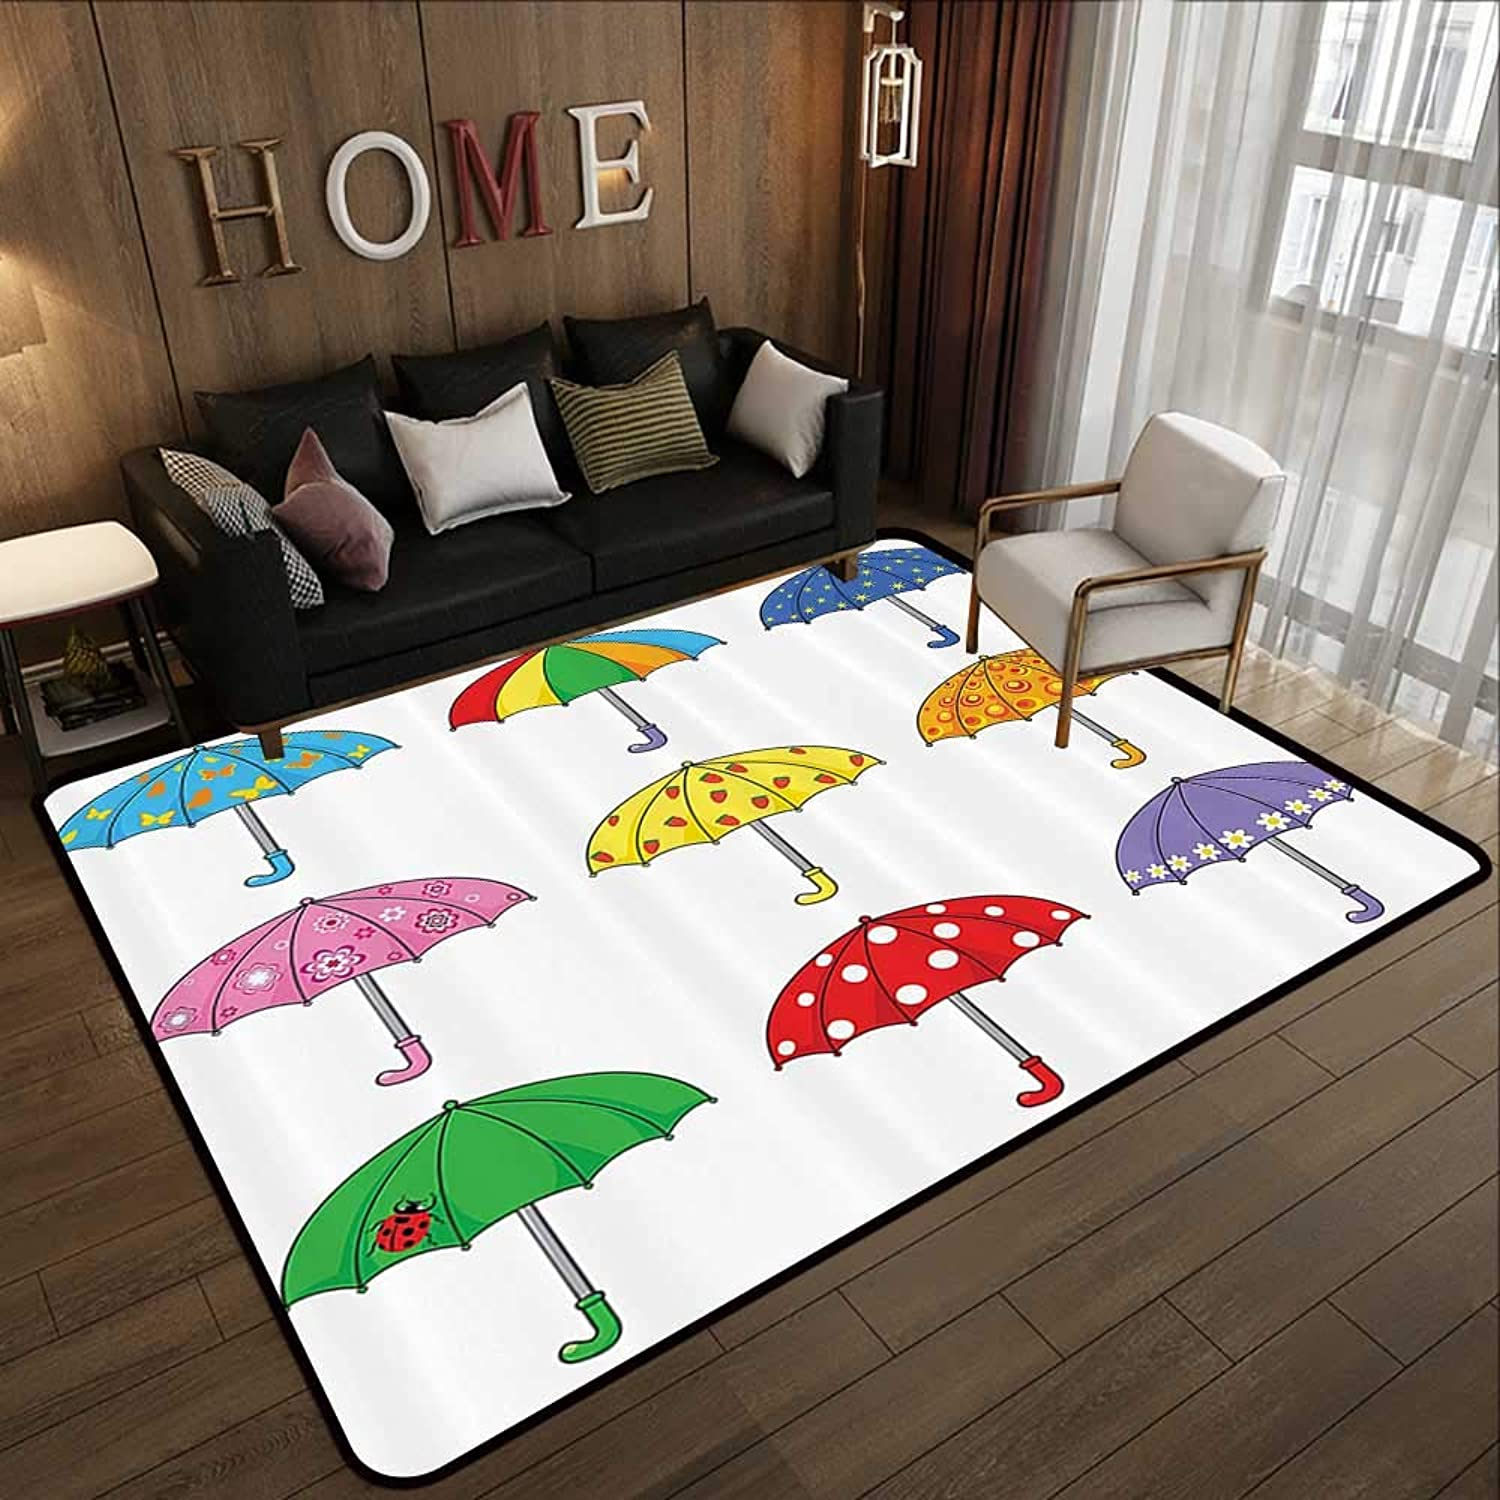 Carpet mat,Apartment Decor,Rainbow Umbrellas with Ornate Polka Dot Butterfly Star Ladybug Planet Patterns,Multi 47 x 59  Floor Mat Entrance Doormat